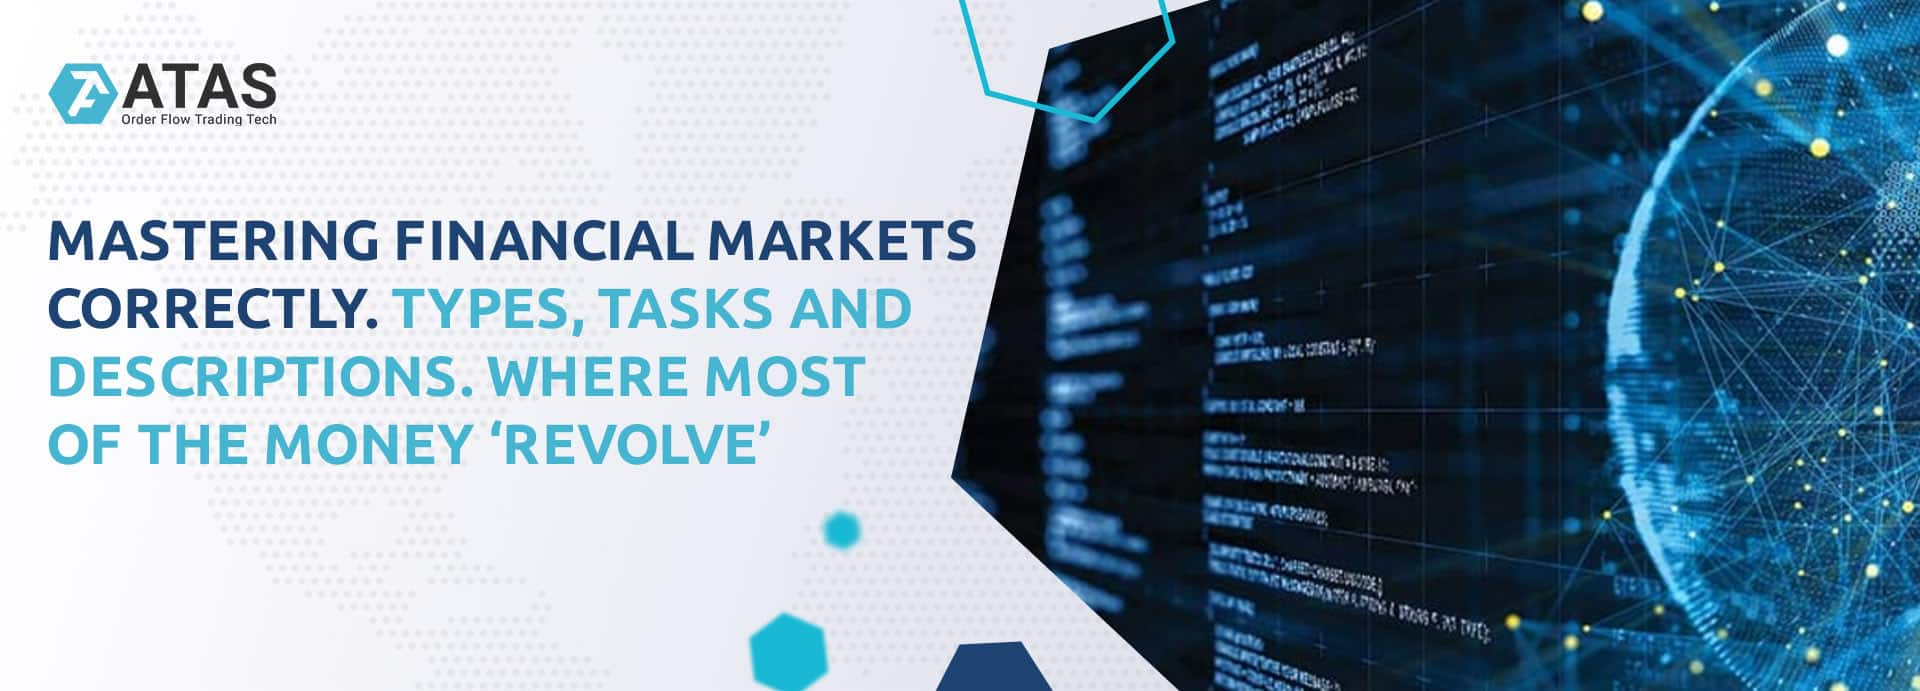 Mastering financial markets correctly. Types, tasks and descriptions. Where most of the money 'revolve'